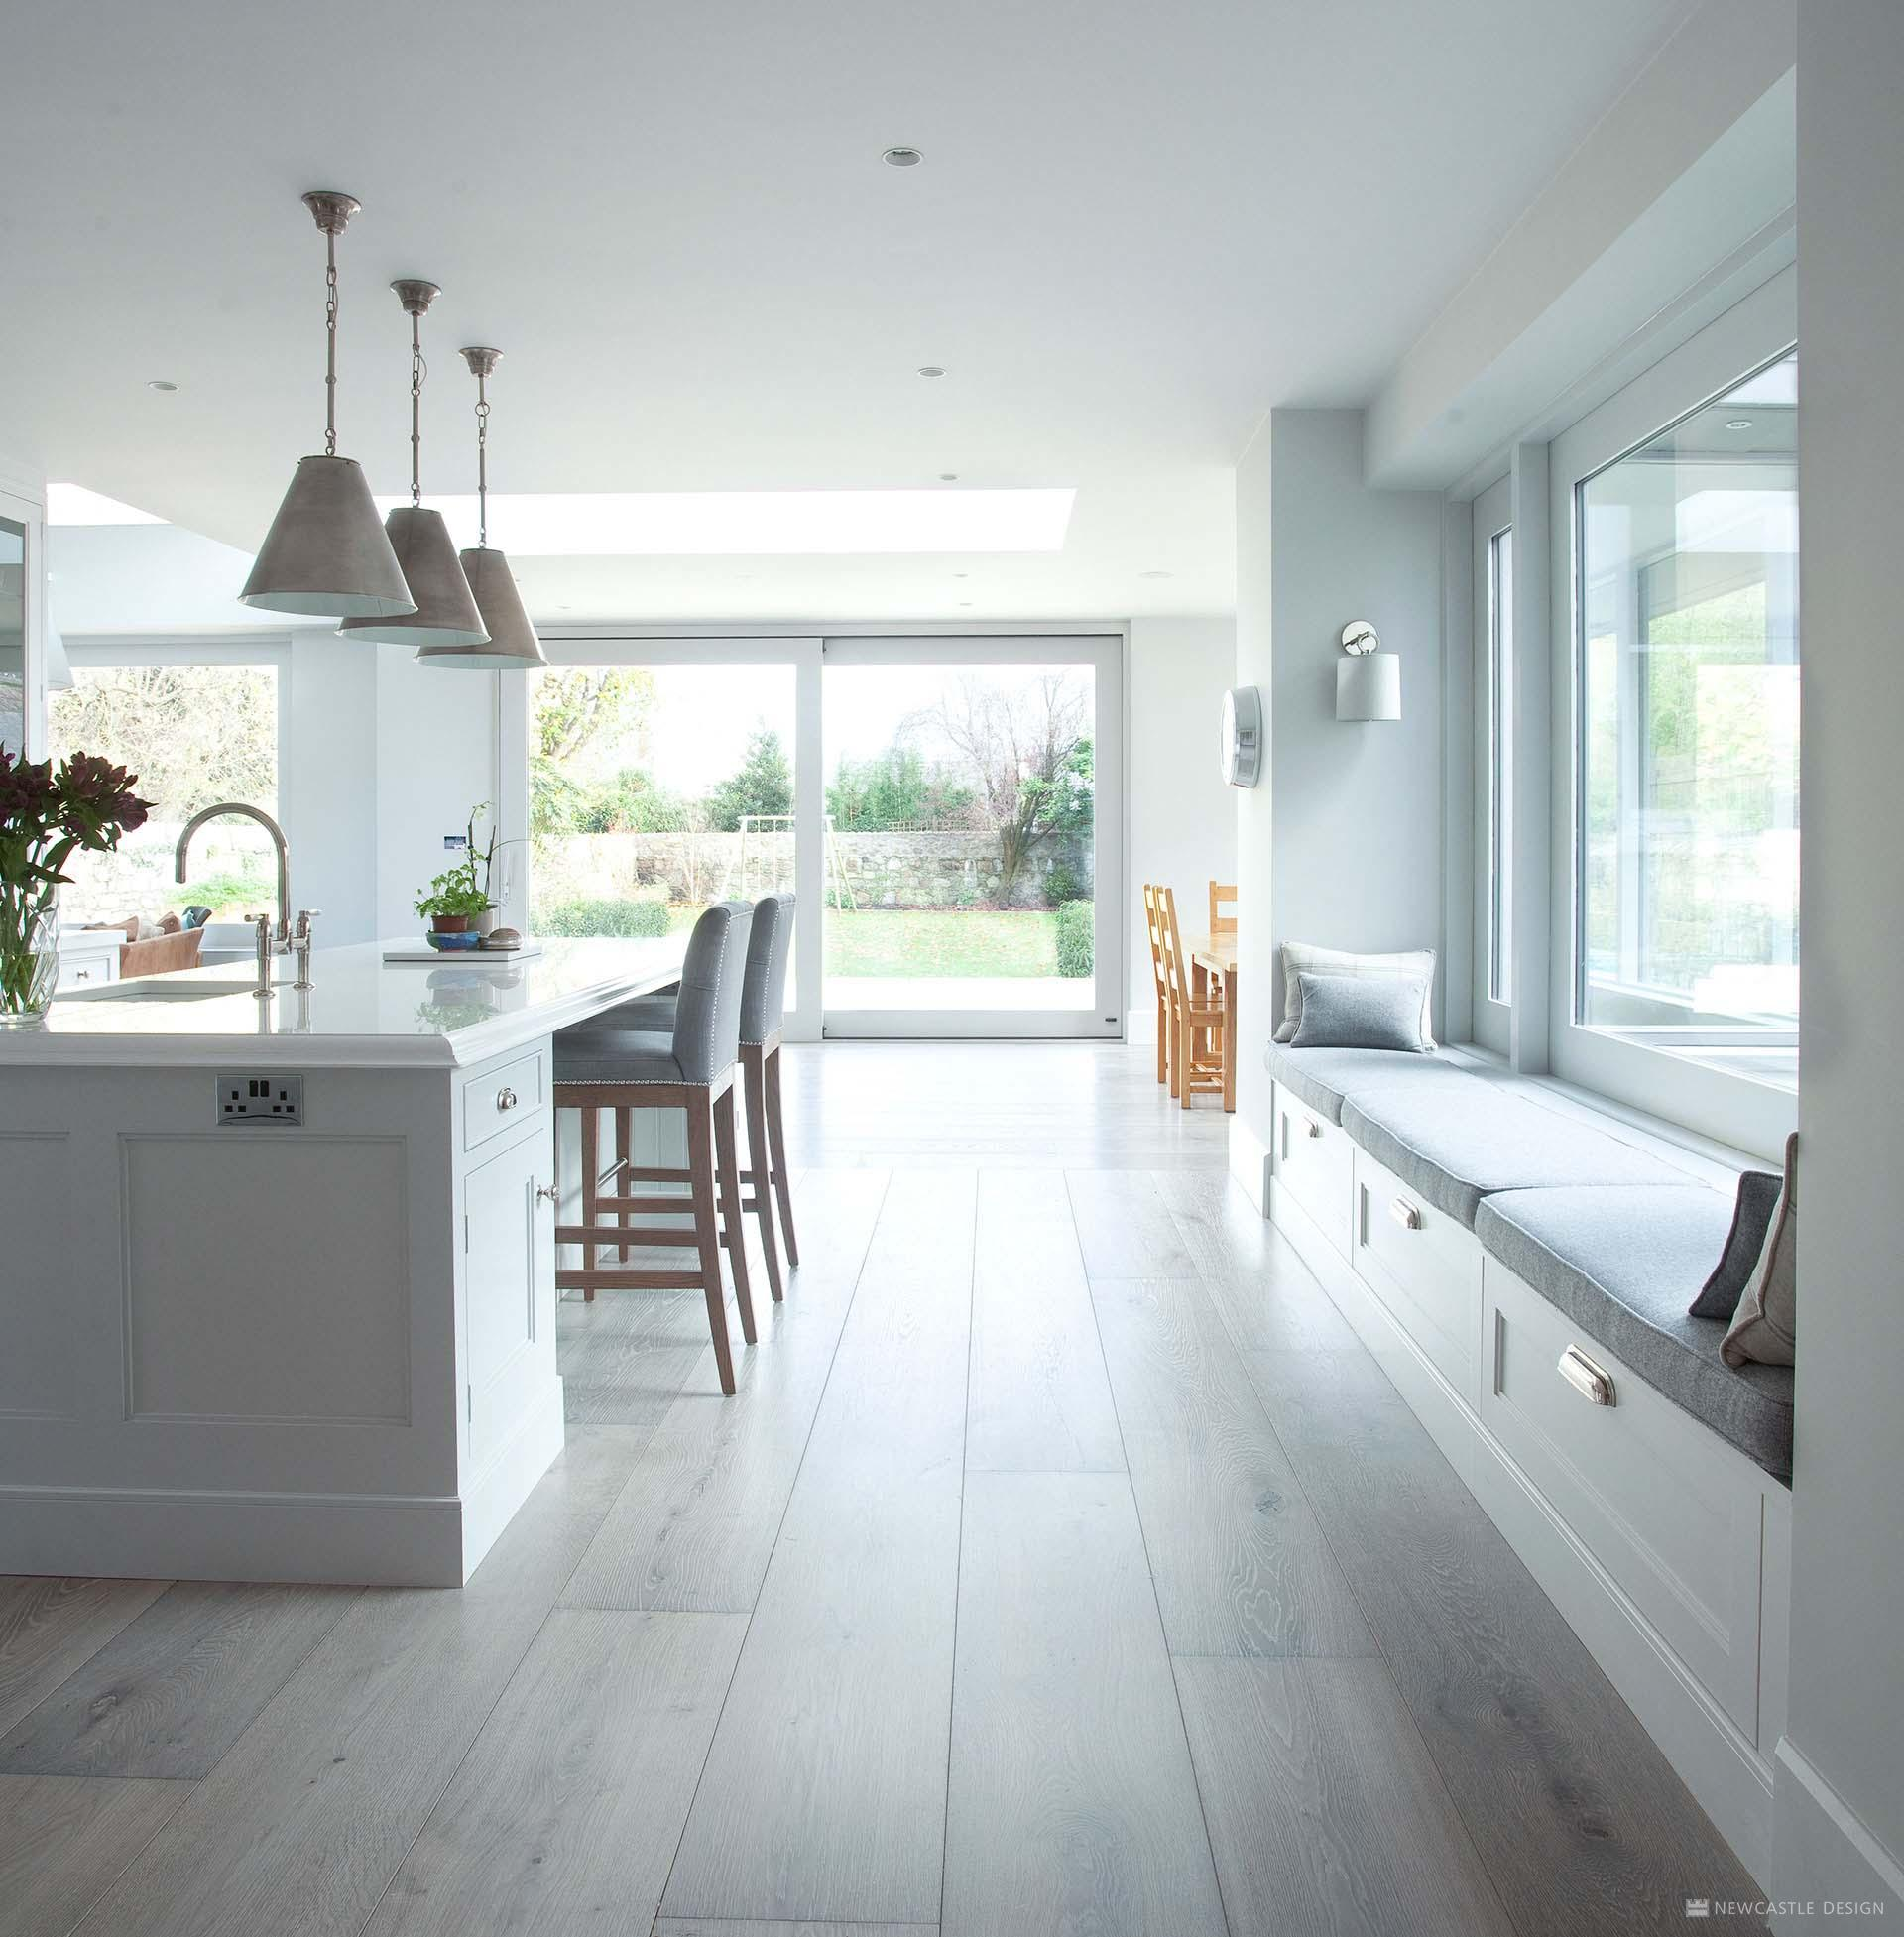 Newcastle Design Ireland | Kitchen Company Dublin